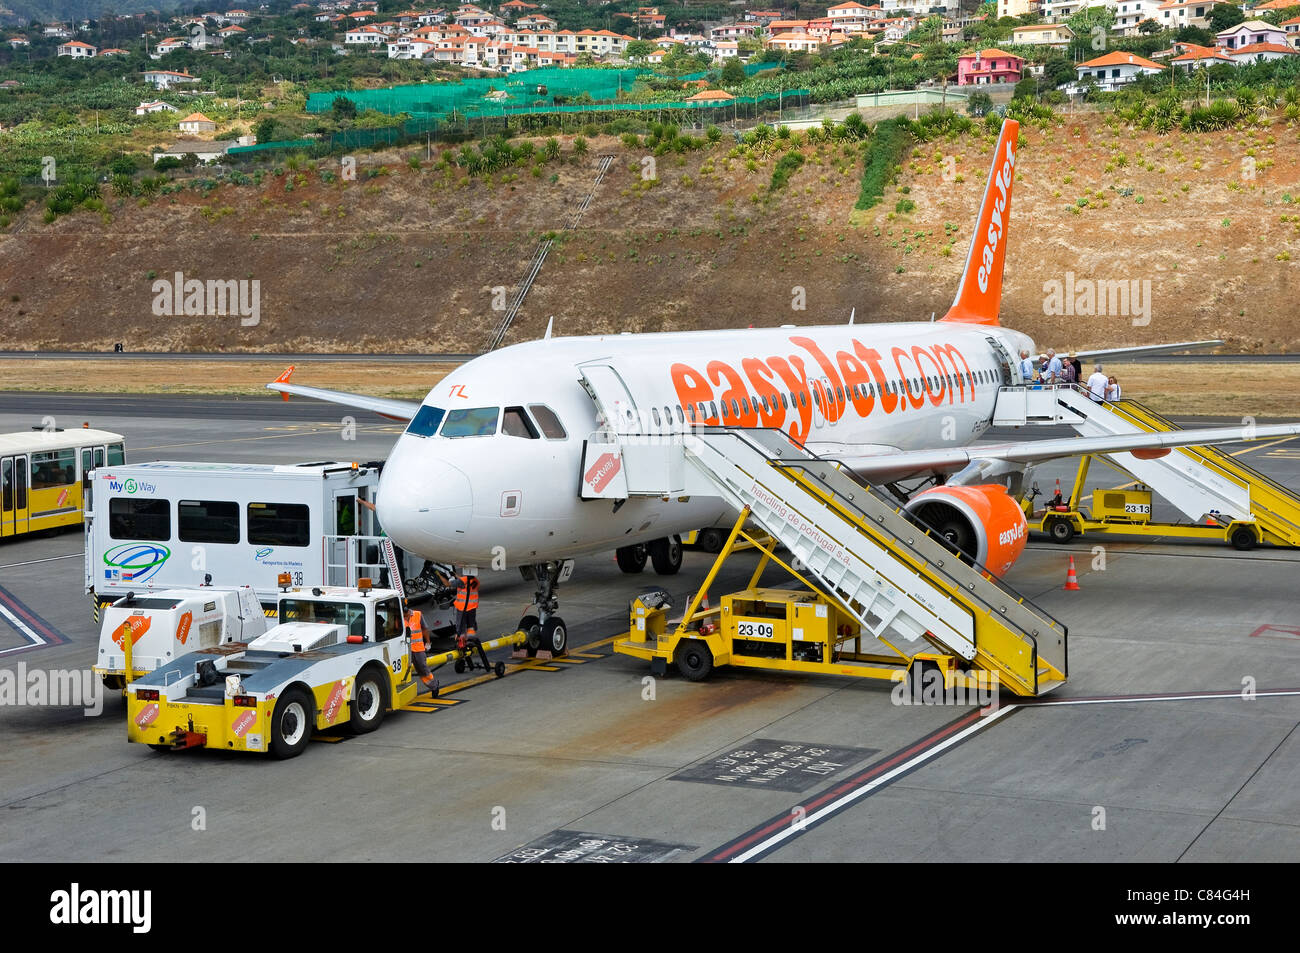 EasyJet plane parked at Funchal airport Madeira Portugal EU Europe - Stock Image